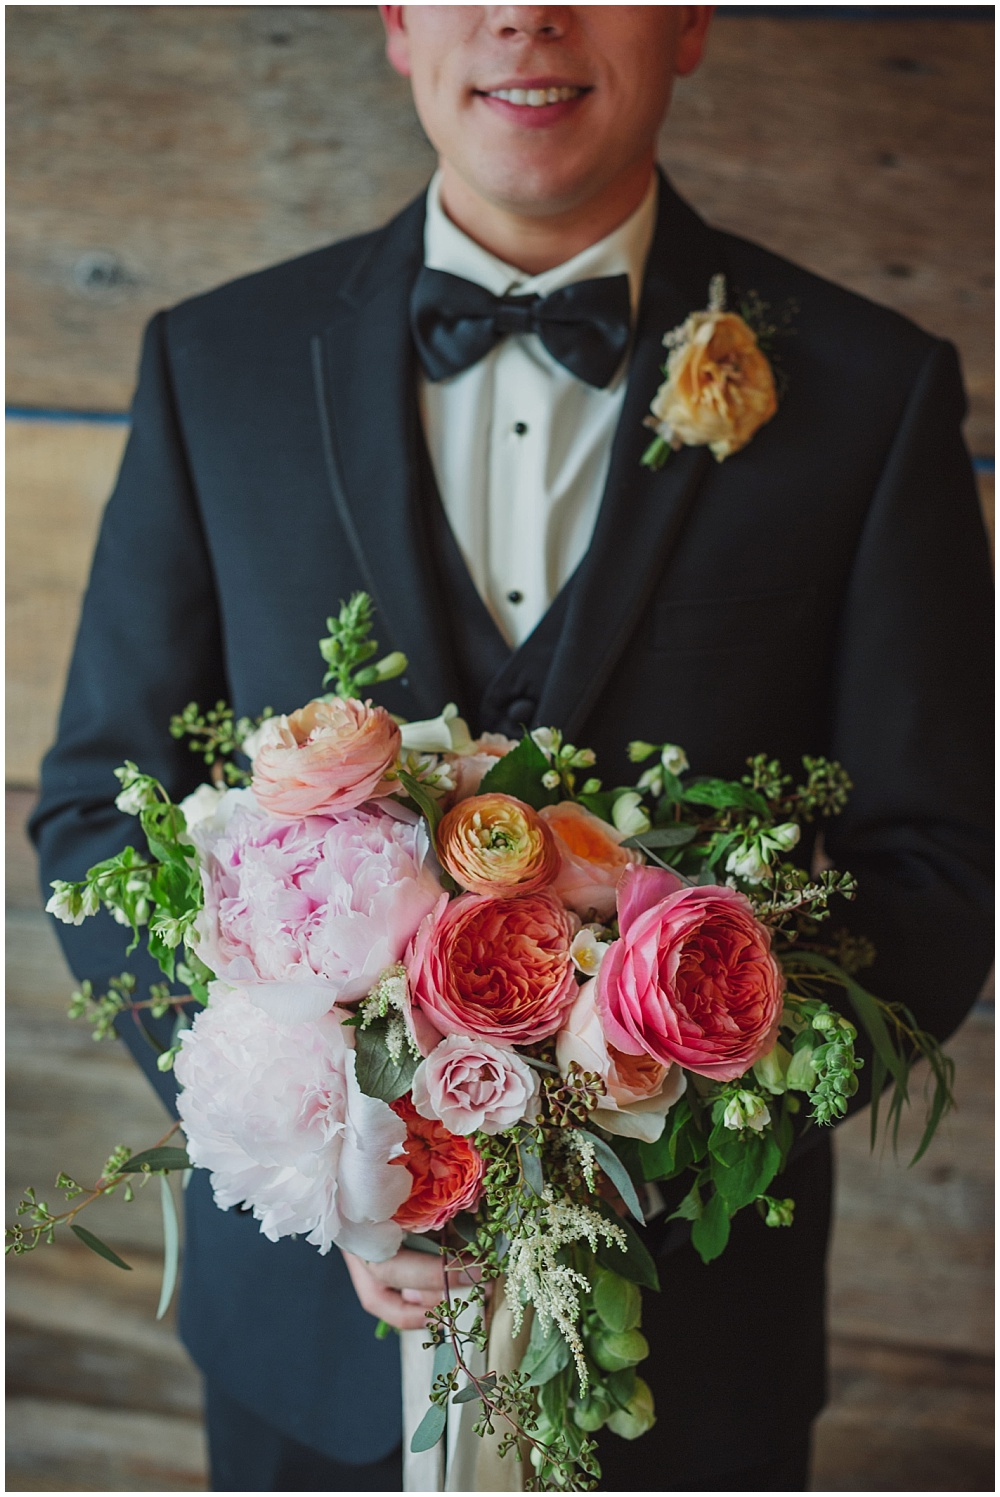 Groom with blush spring bridal bouquet | Ritz Charles Garden Pavilion Wedding by Stacy Able Photography & Jessica Dum Wedding Coordination